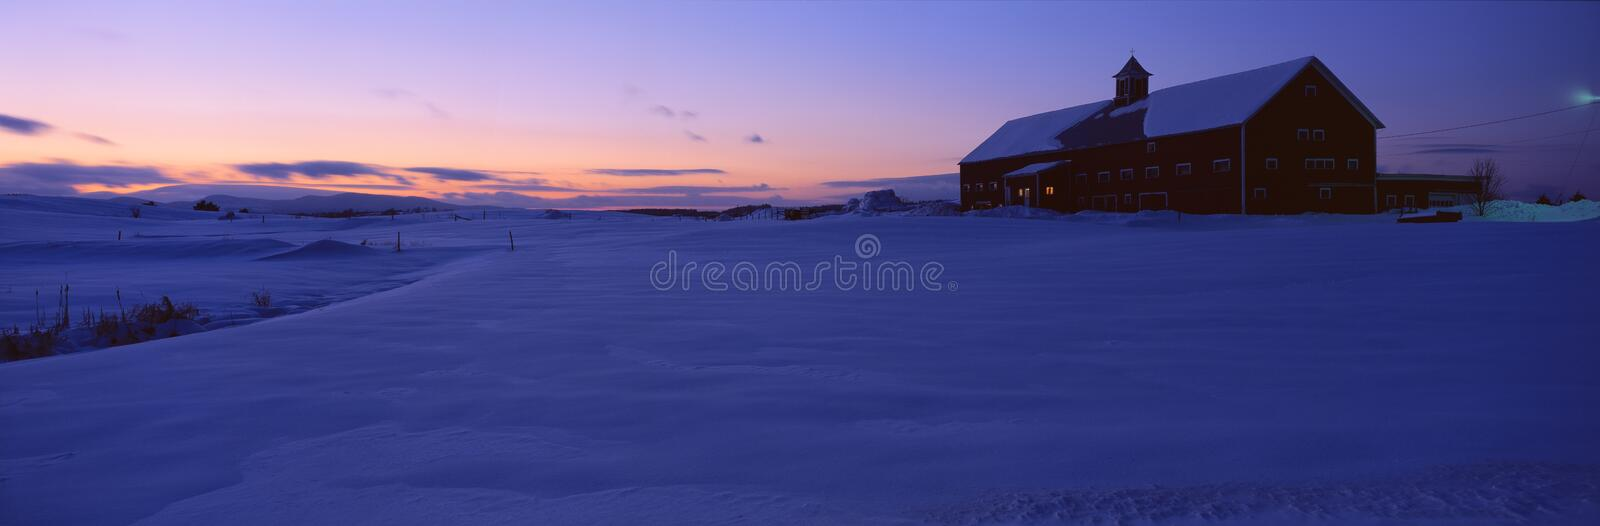 Shed in snow royalty free stock photo